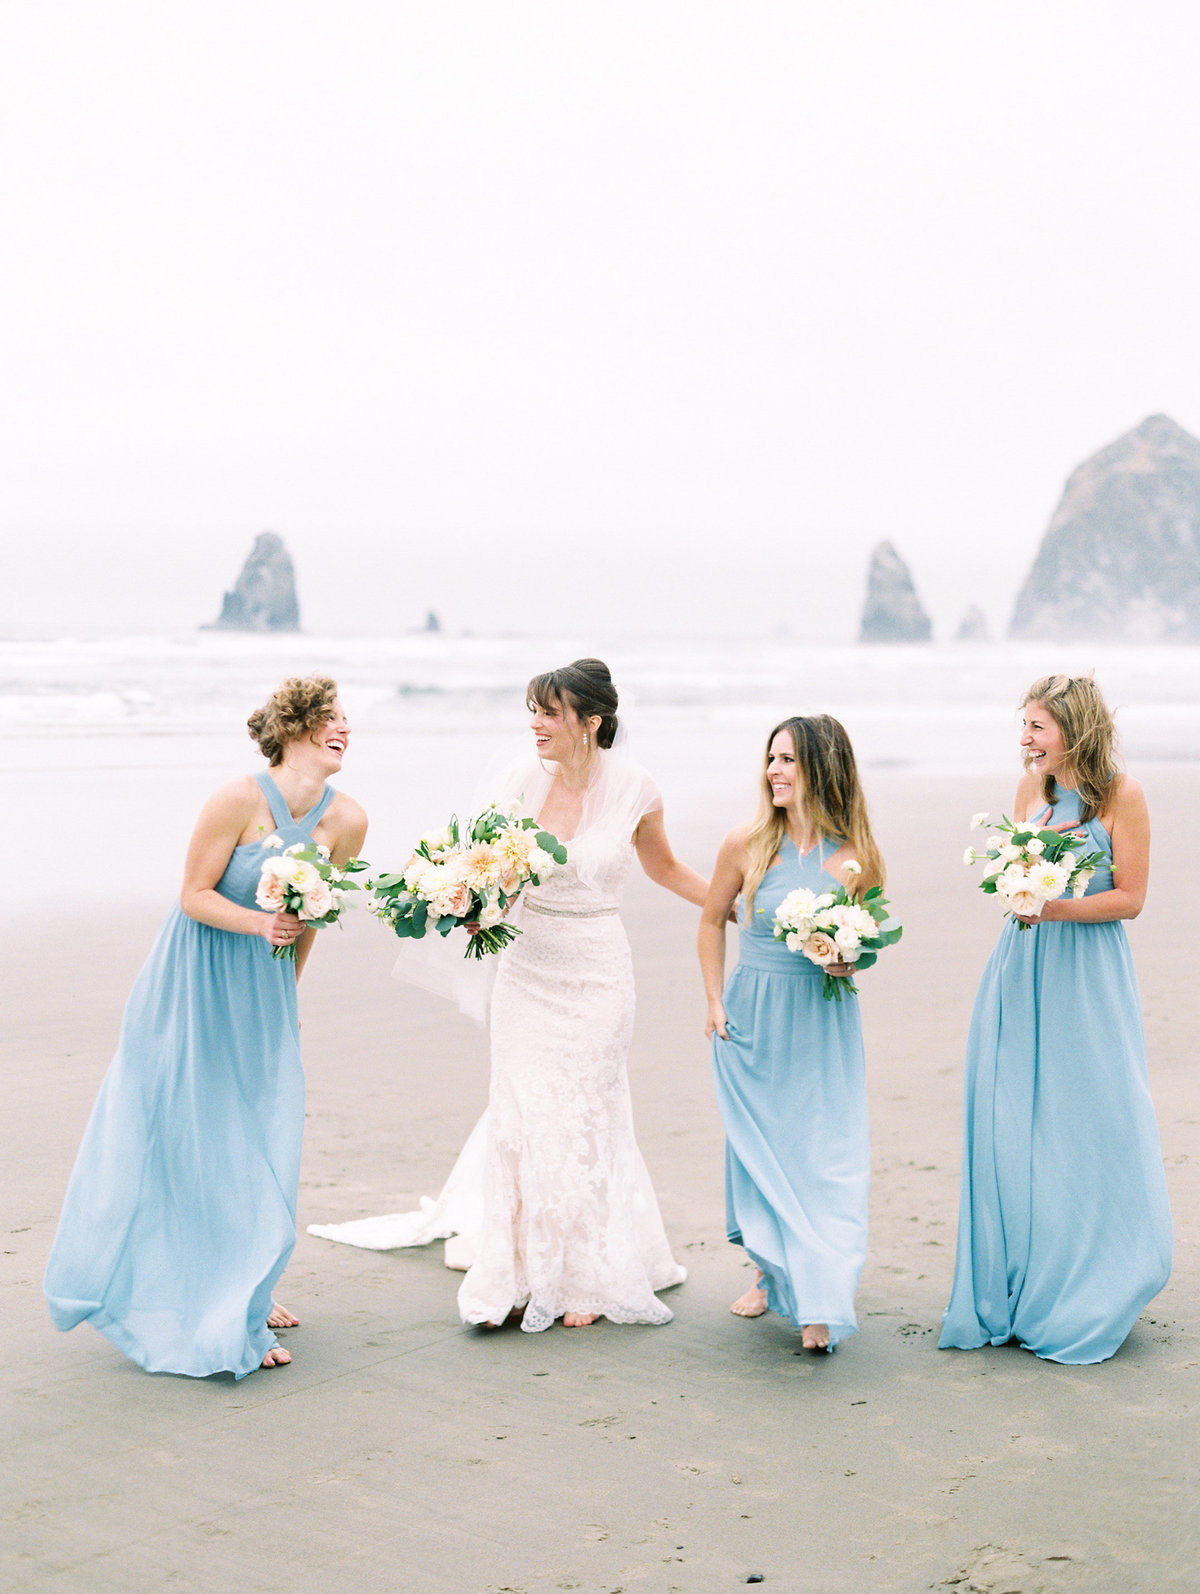 cannon-beach-wedding-at-stephanie-inn-18